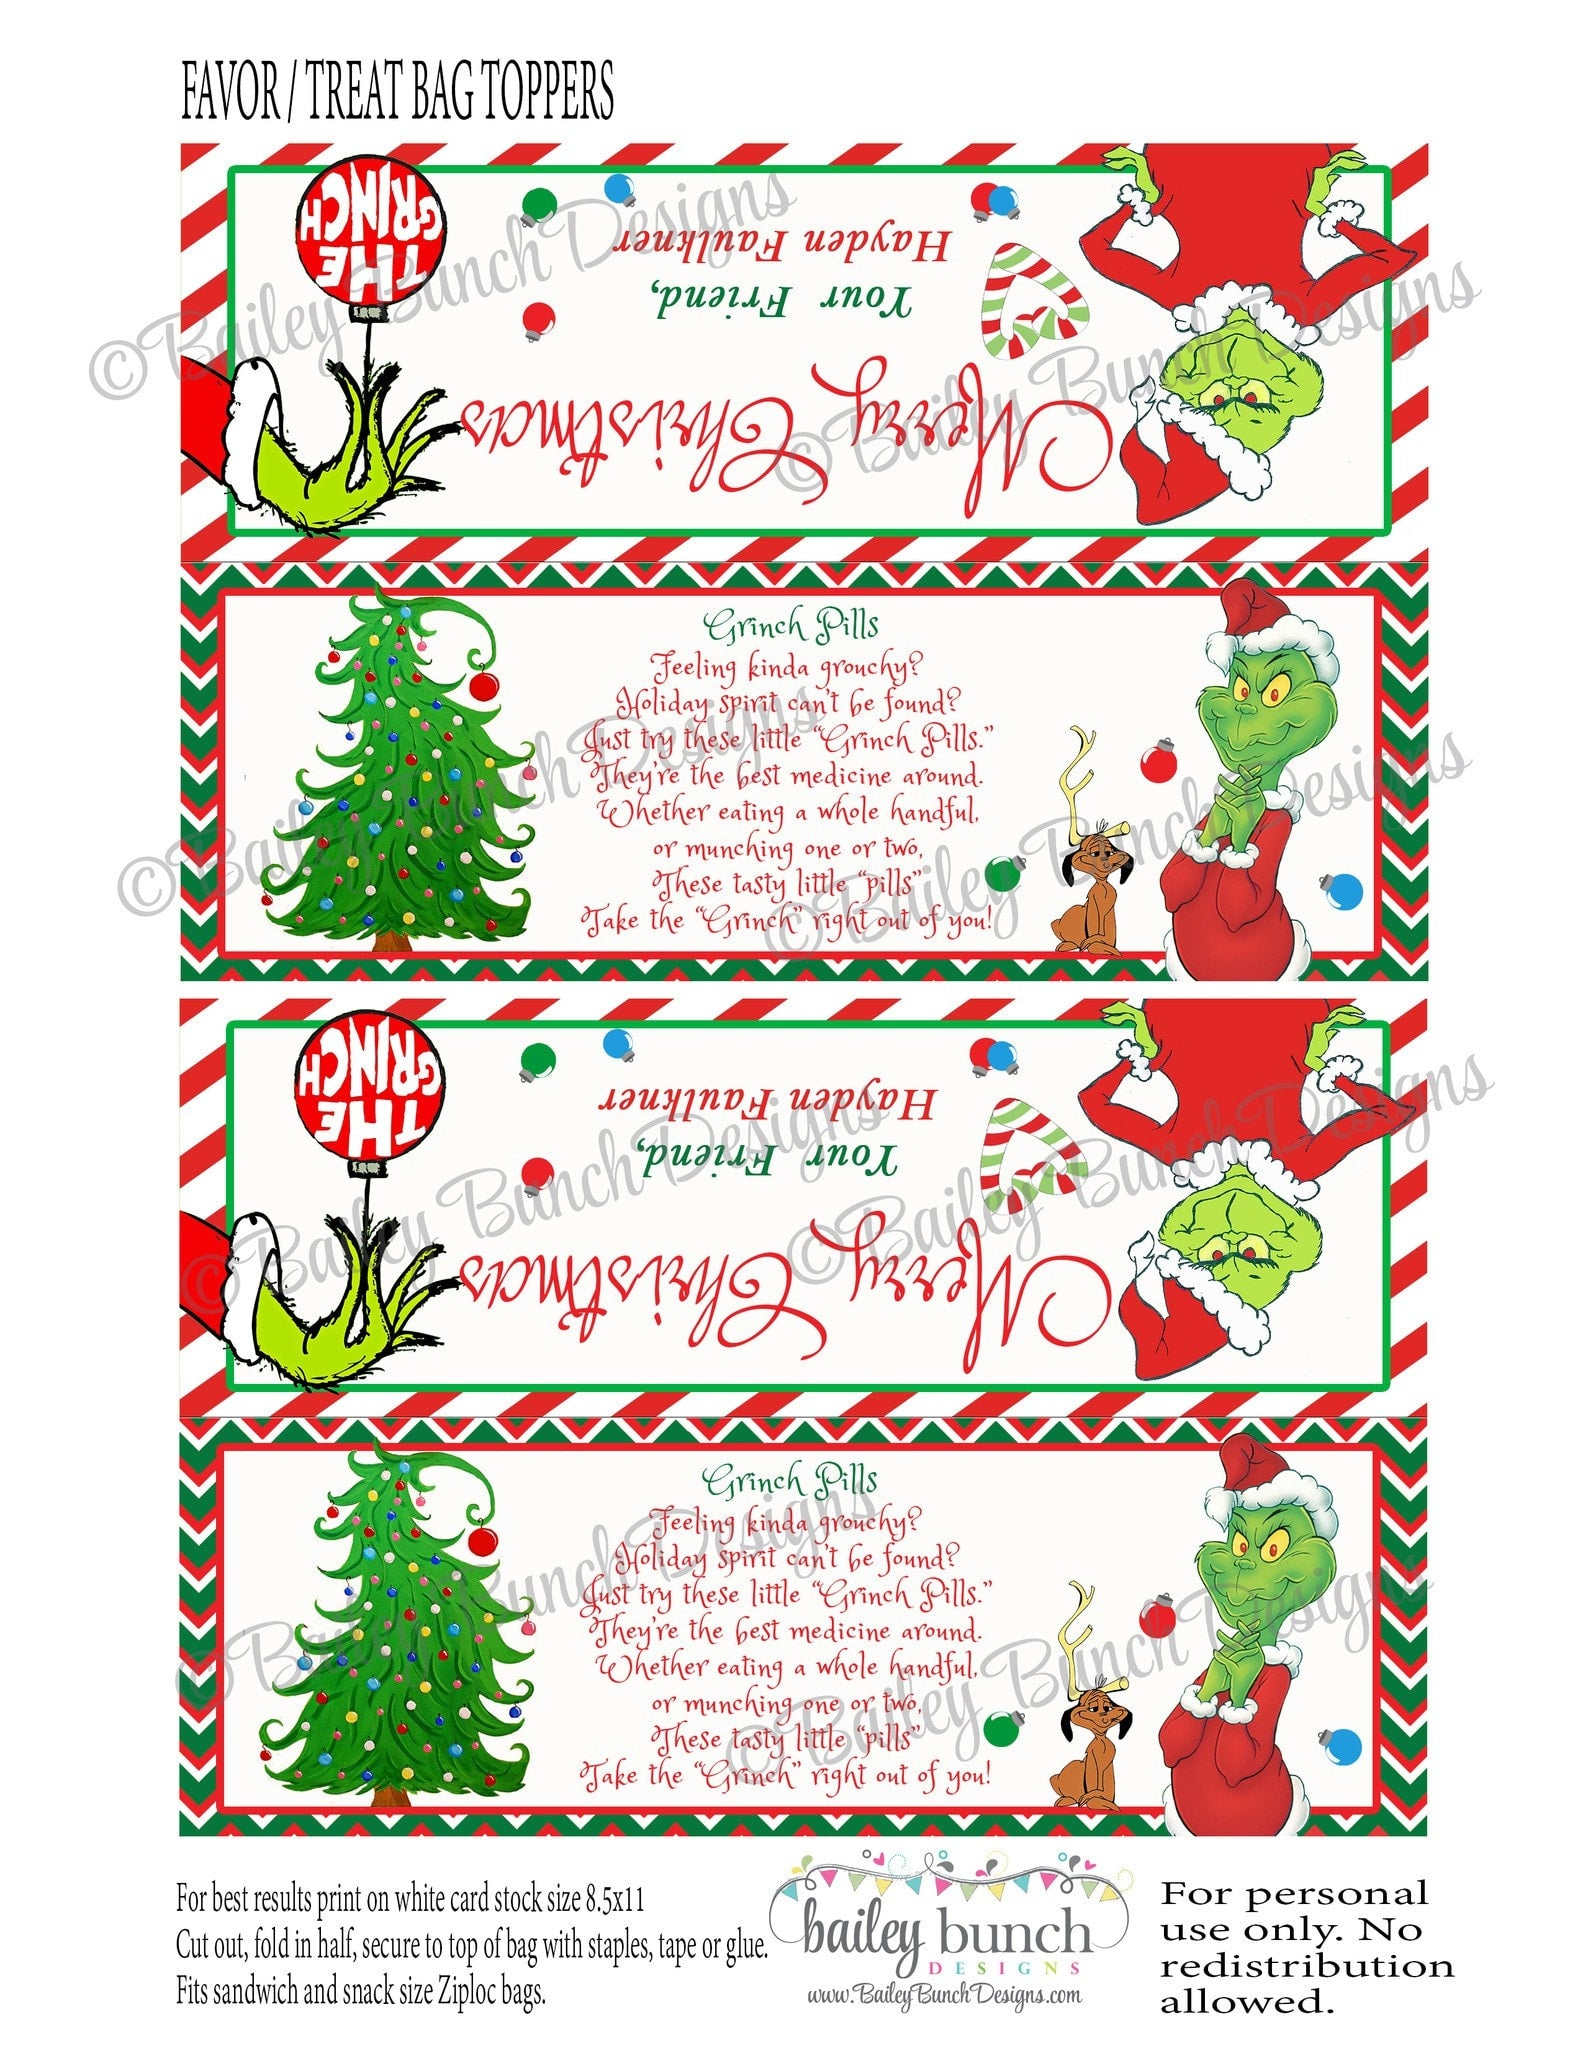 photo about Christmas Bag Toppers Free Printable known as Grinch Tablets Take care of Baggage, Xmas Toppers IDGRINCH0520